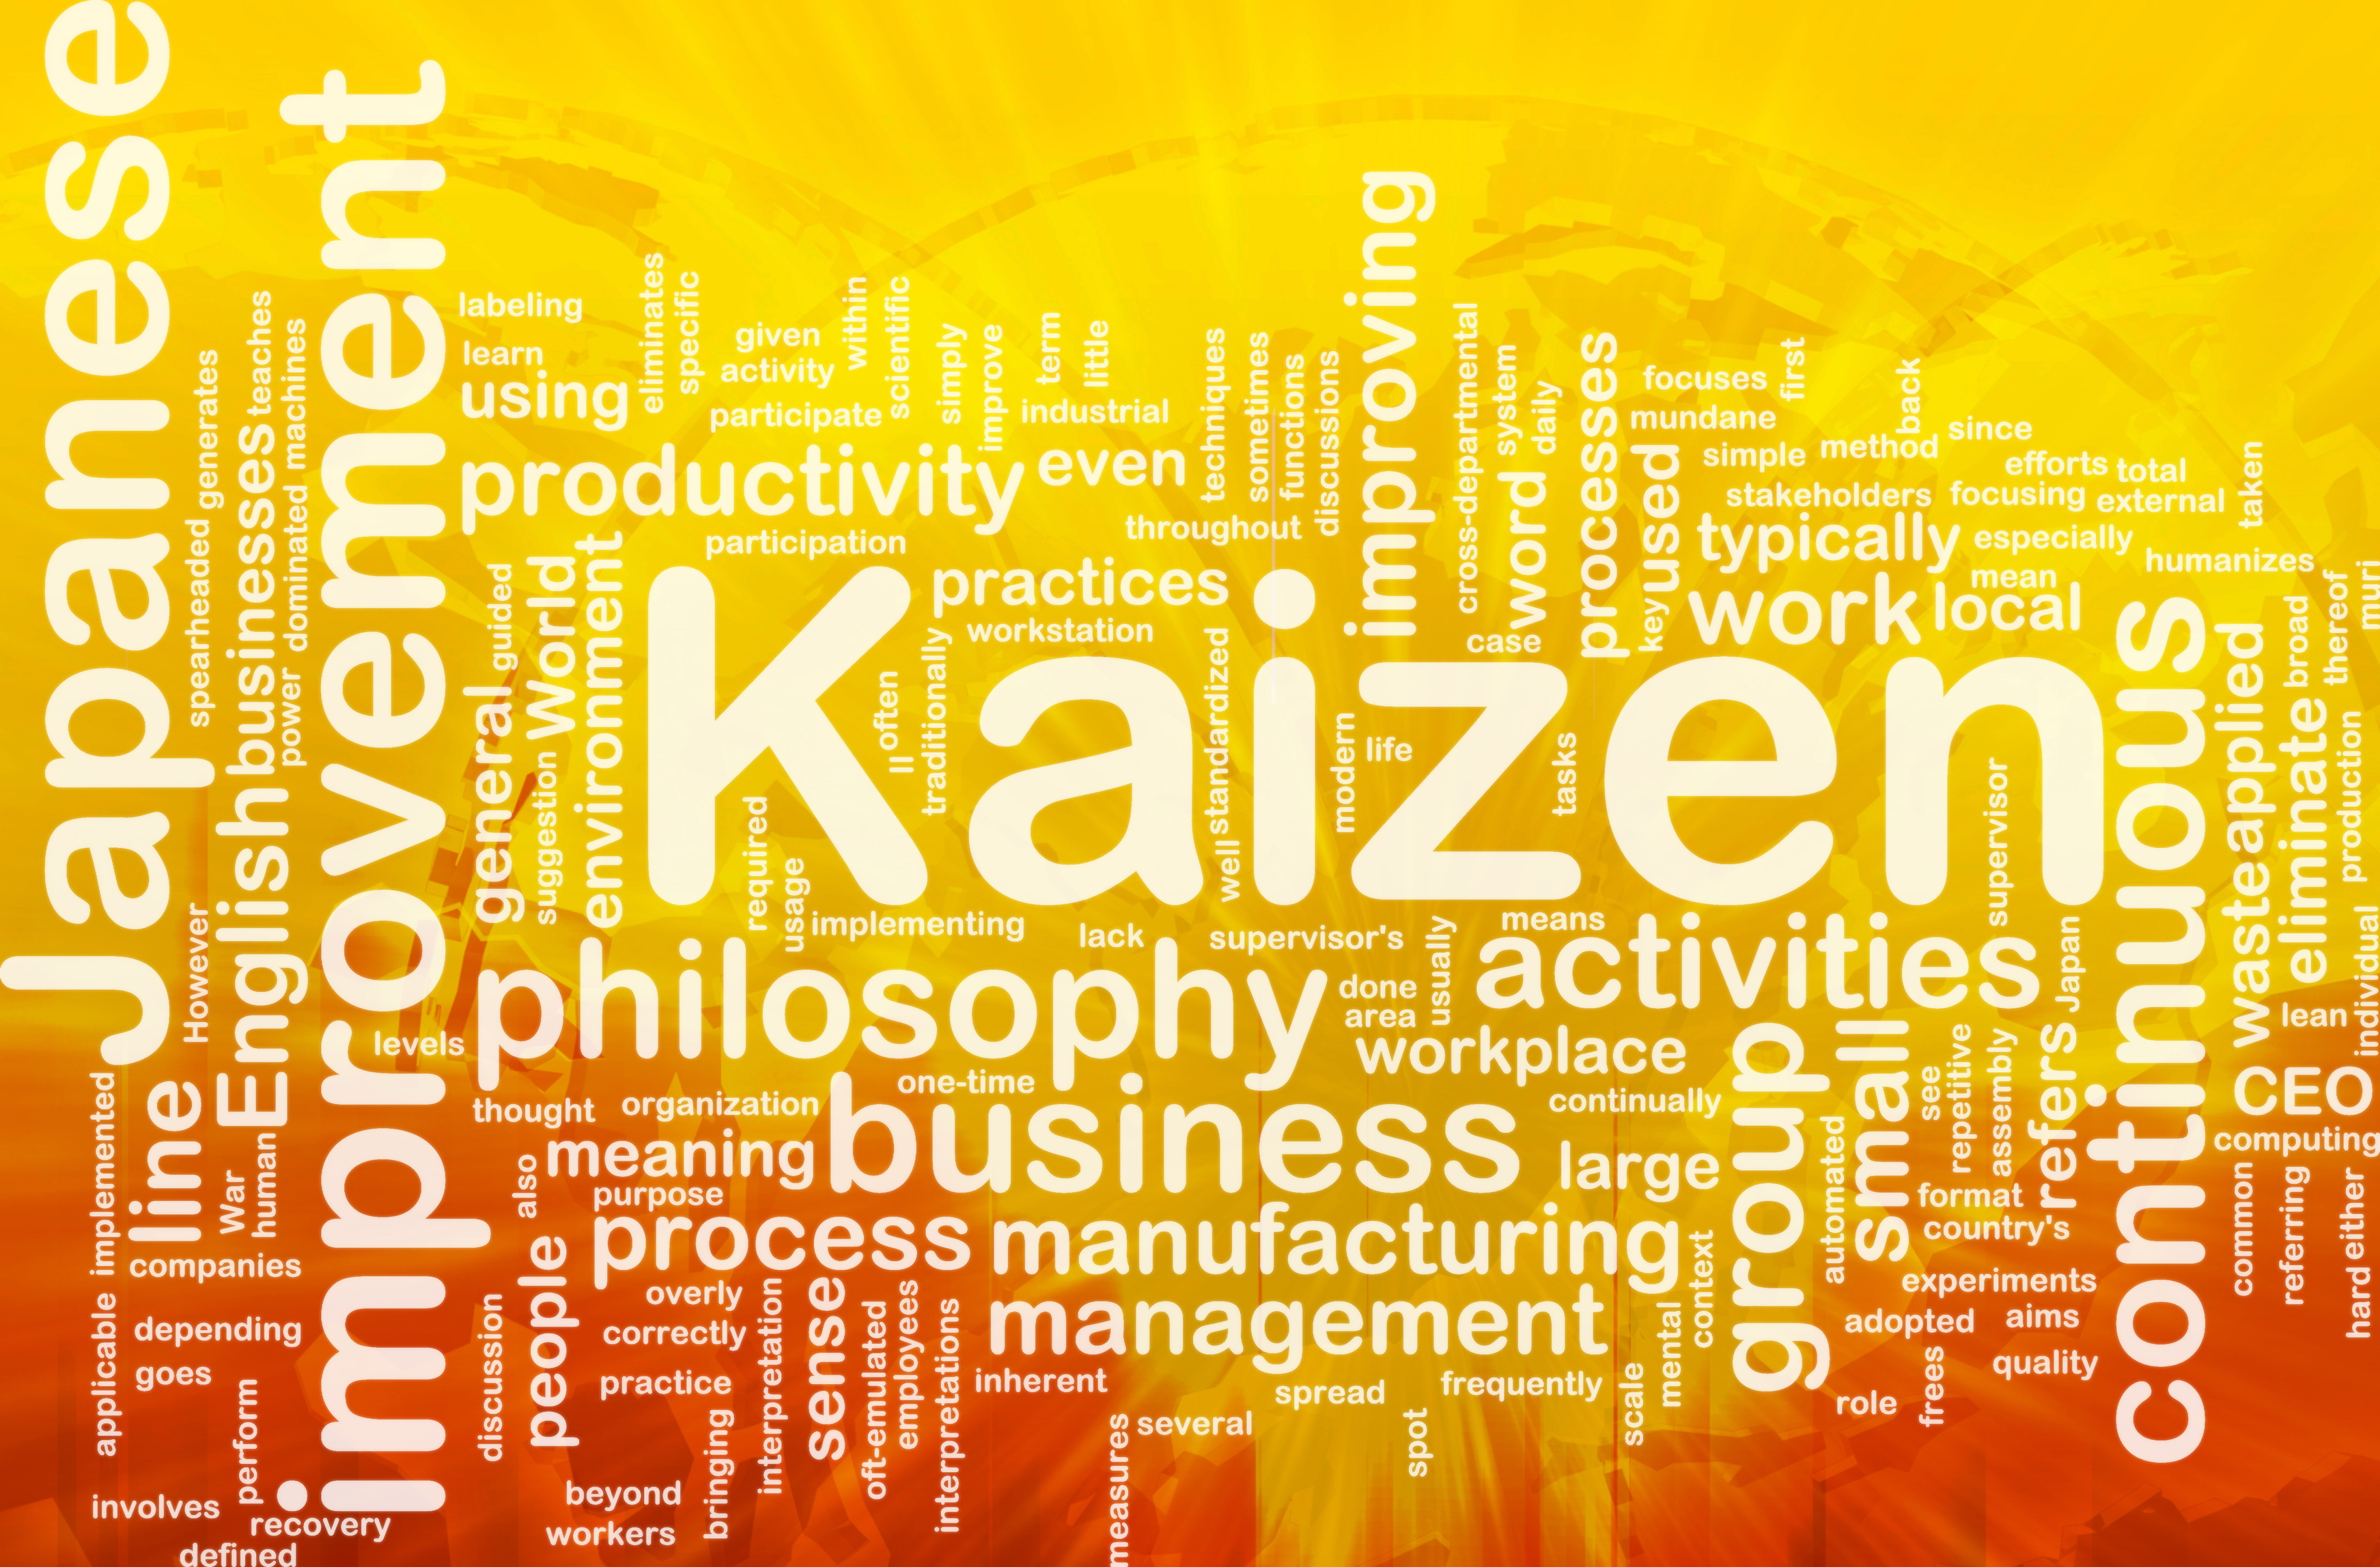 article  what is kaizen philosophy